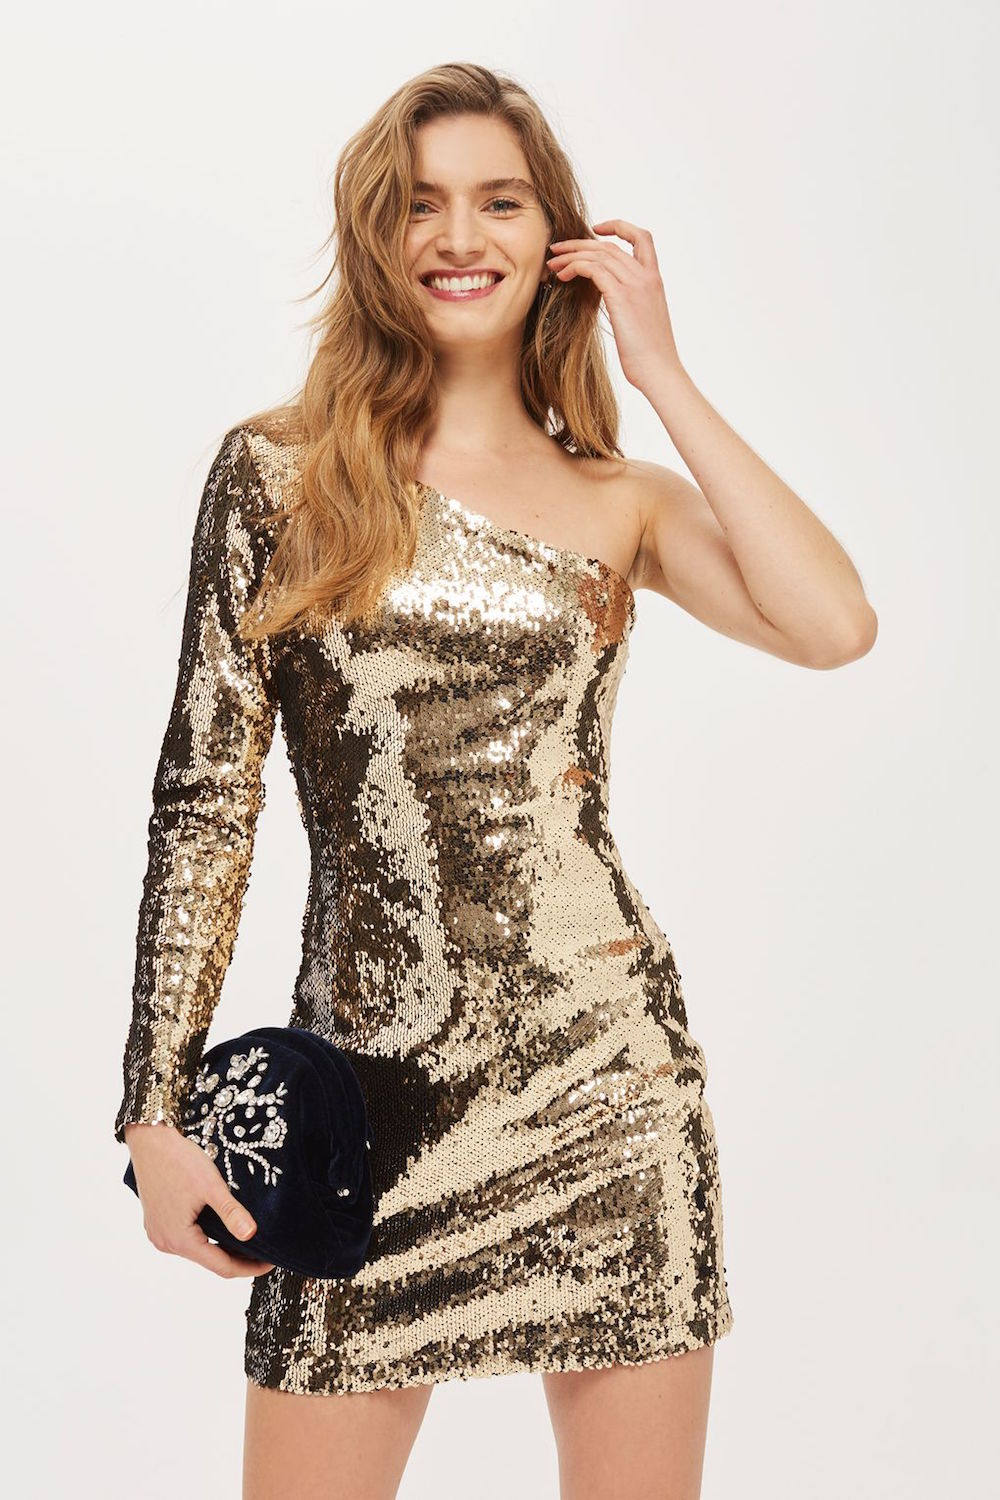 Sale Unique Dance & Party Dresses, High Quality, Fast Shipping.